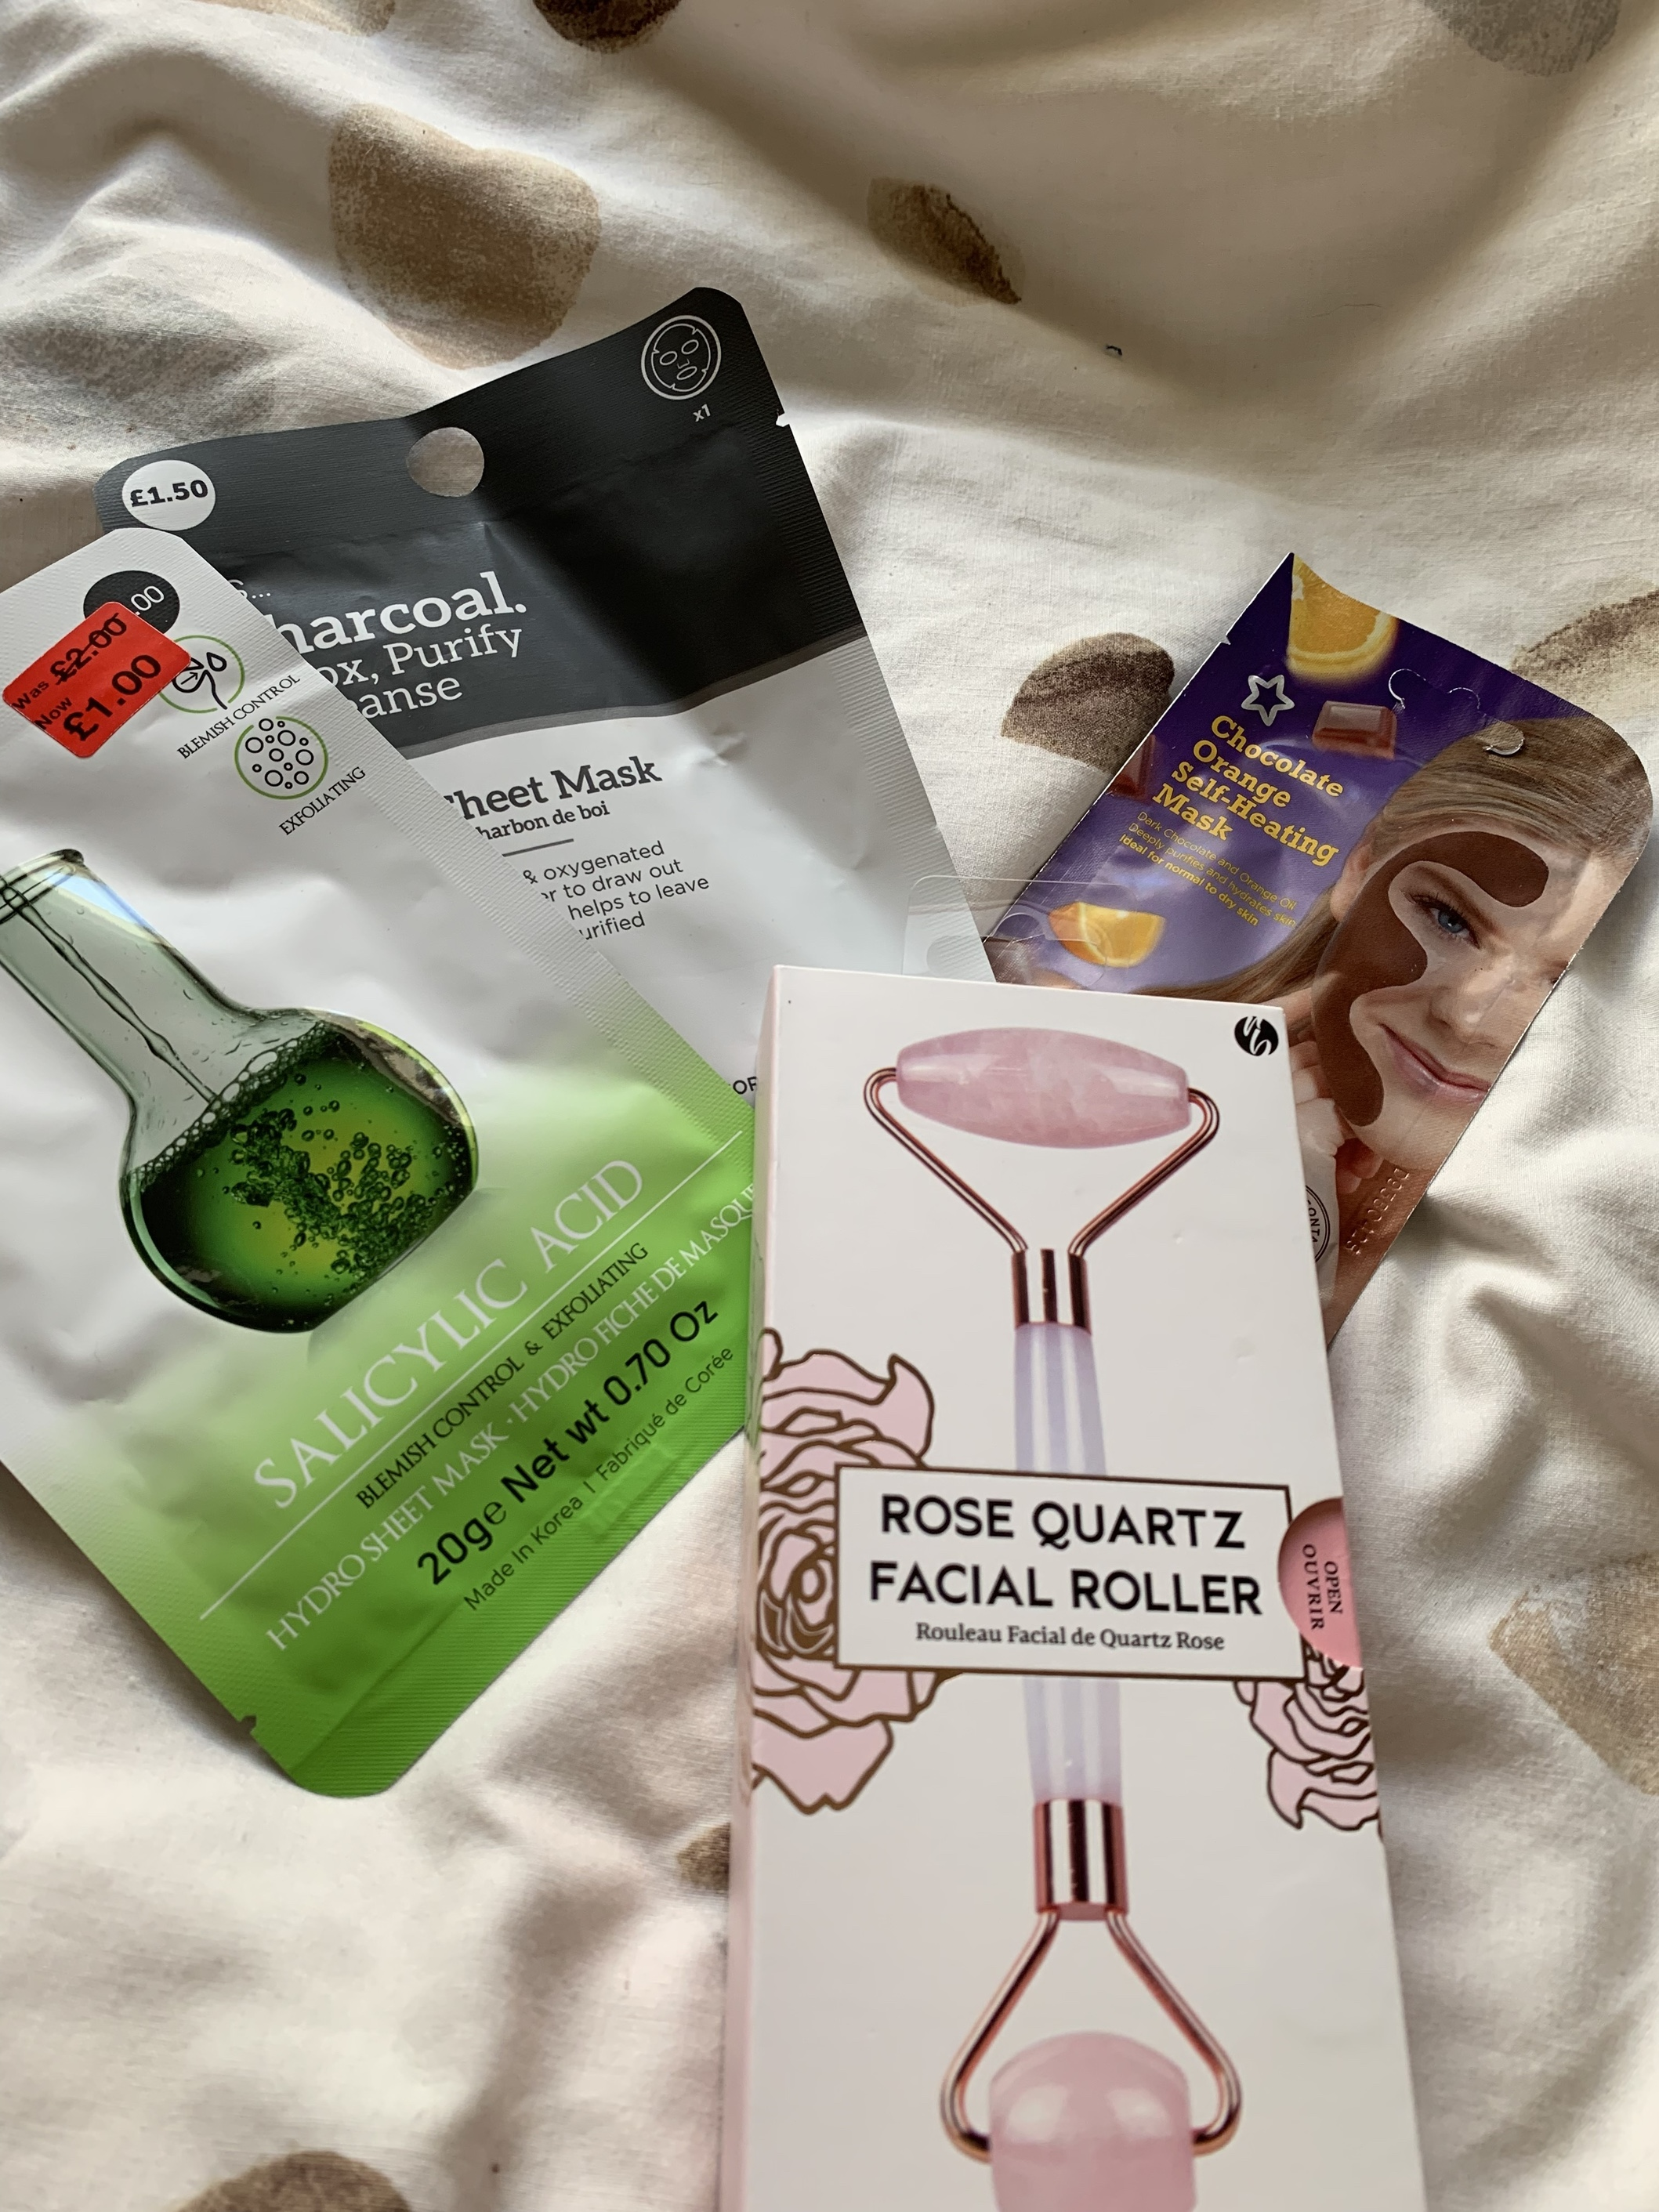 Rose quartz face roller, 2 sheet masks for acne-prone skin and a chocolate orange self-heating face mask.